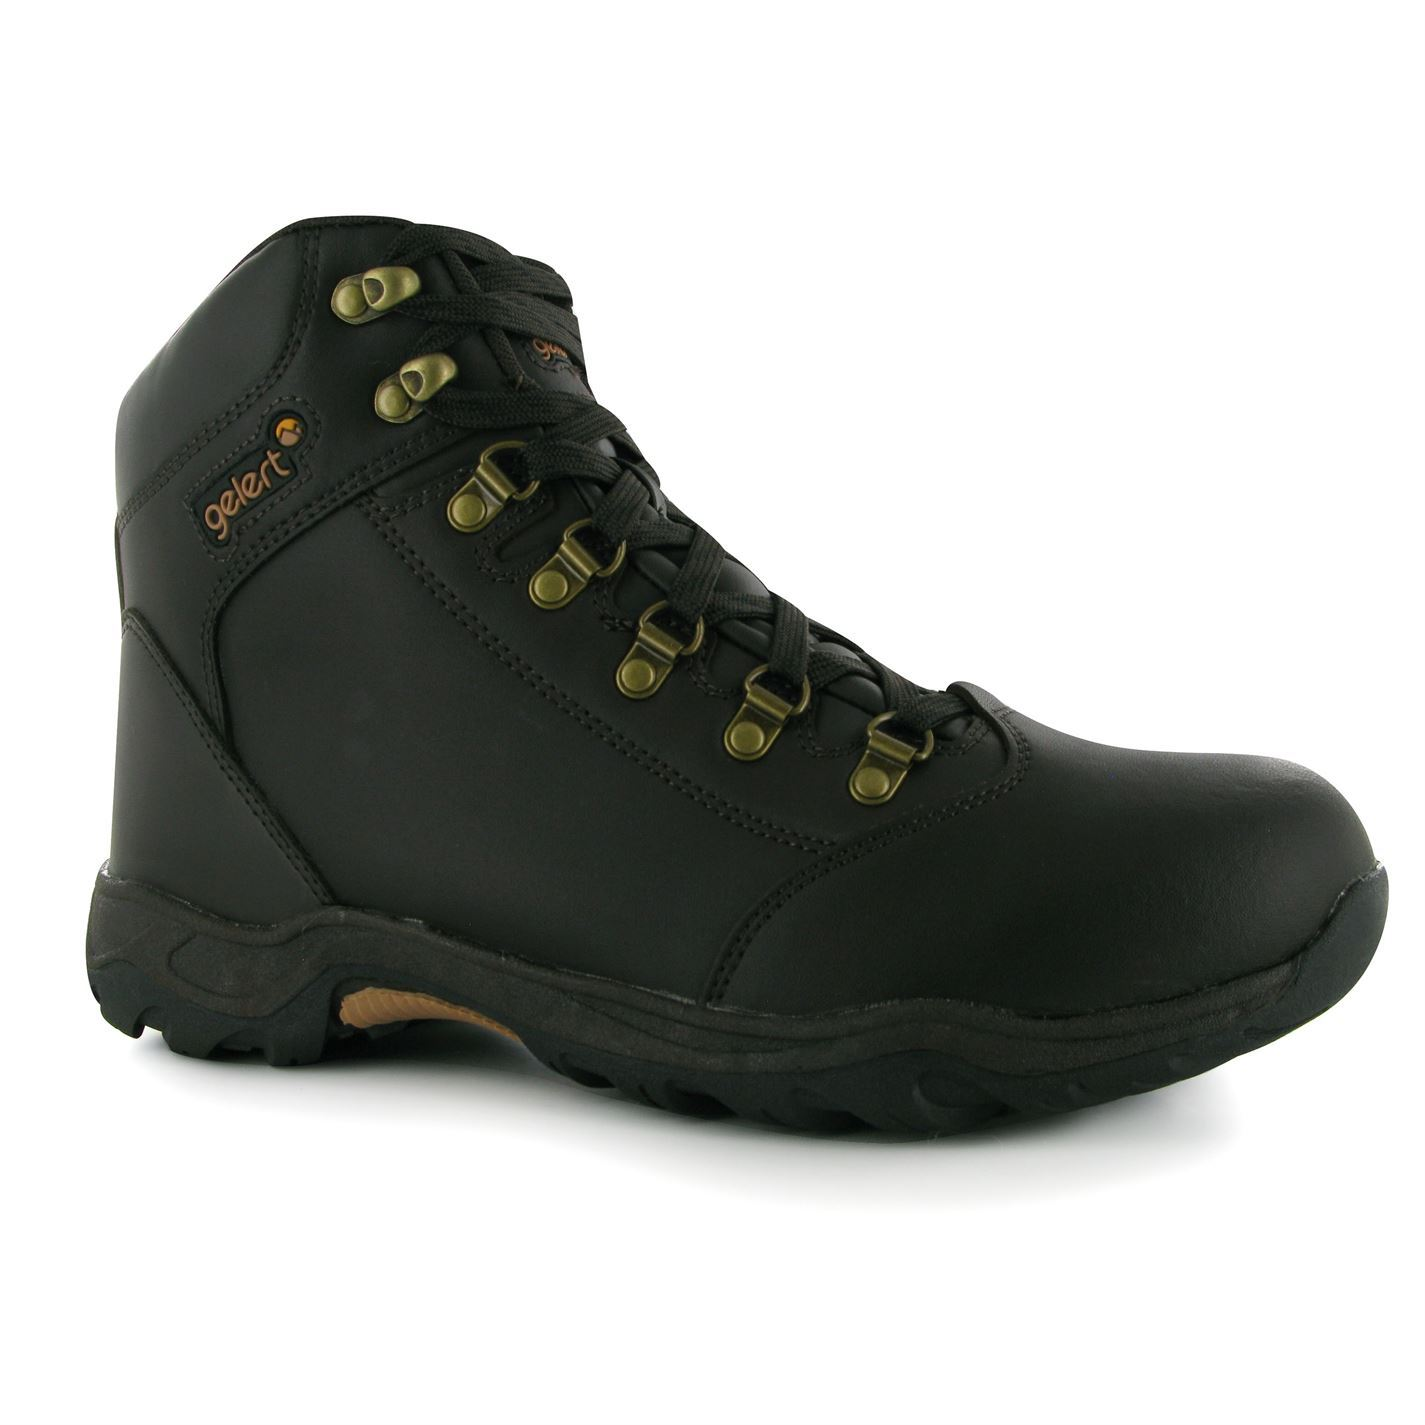 mens gelert leather walking boots new ebay